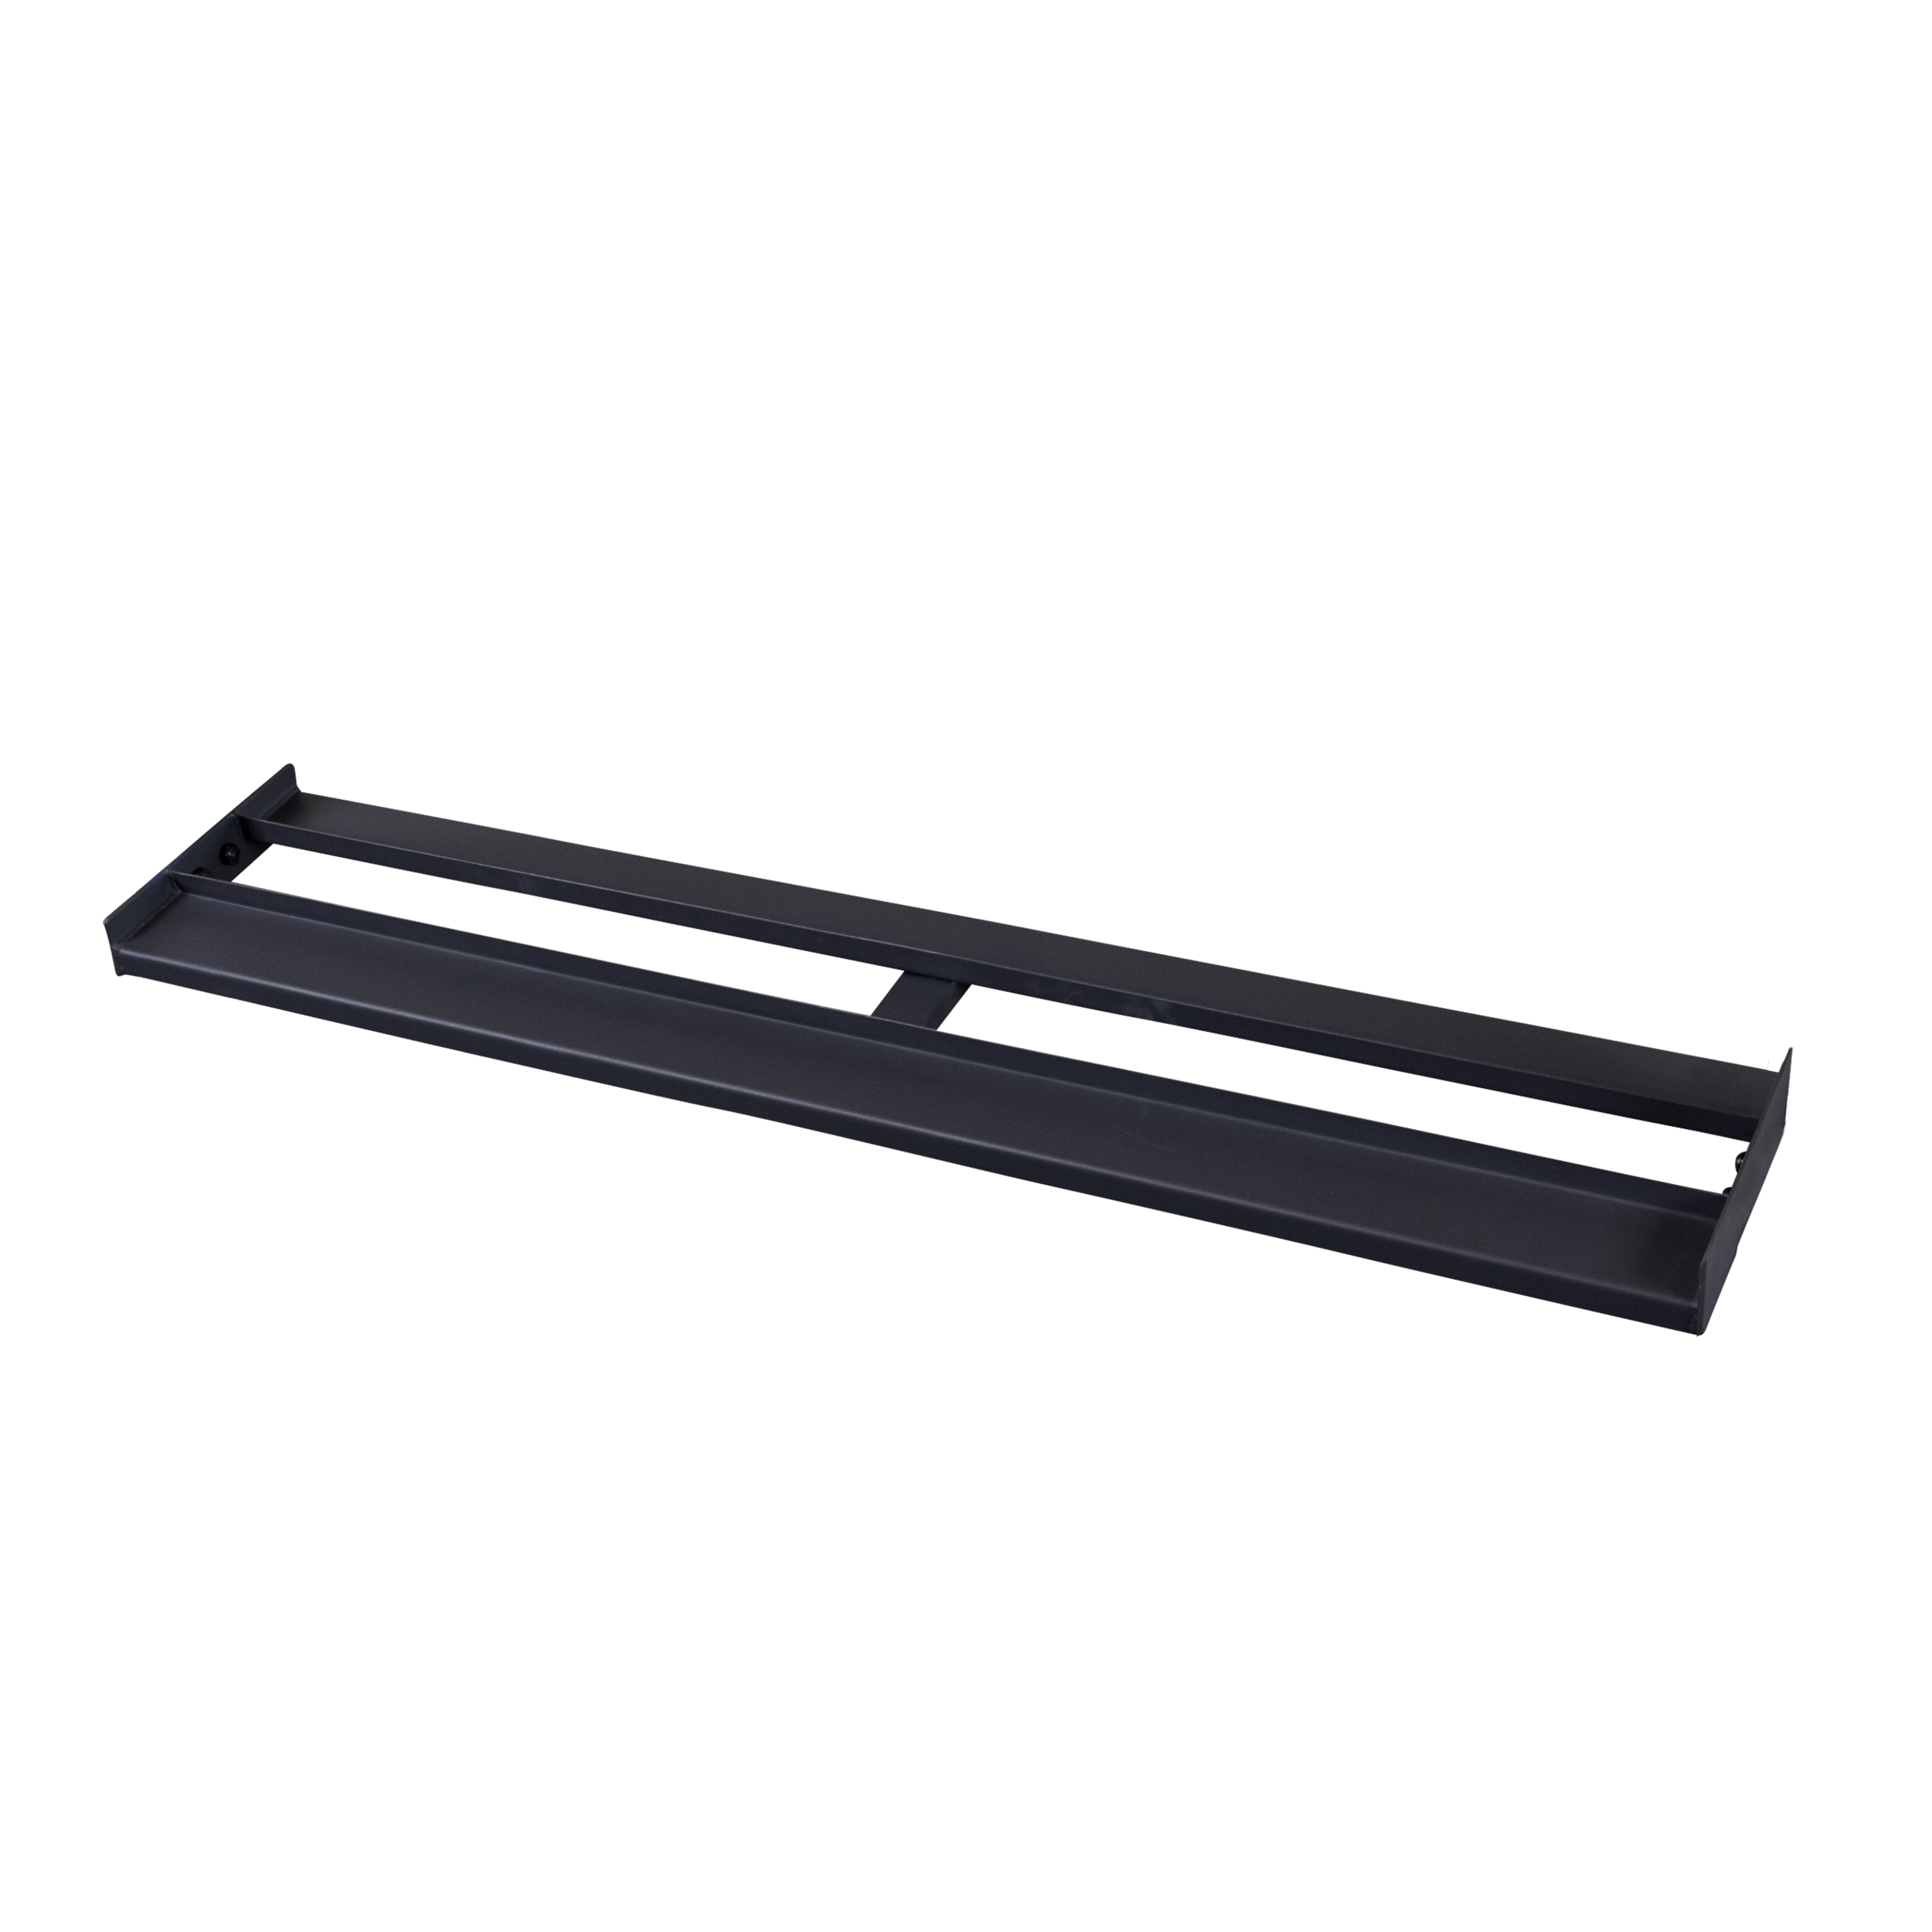 Body-Solid GDRT6 Third Tier Shelf for GDR60